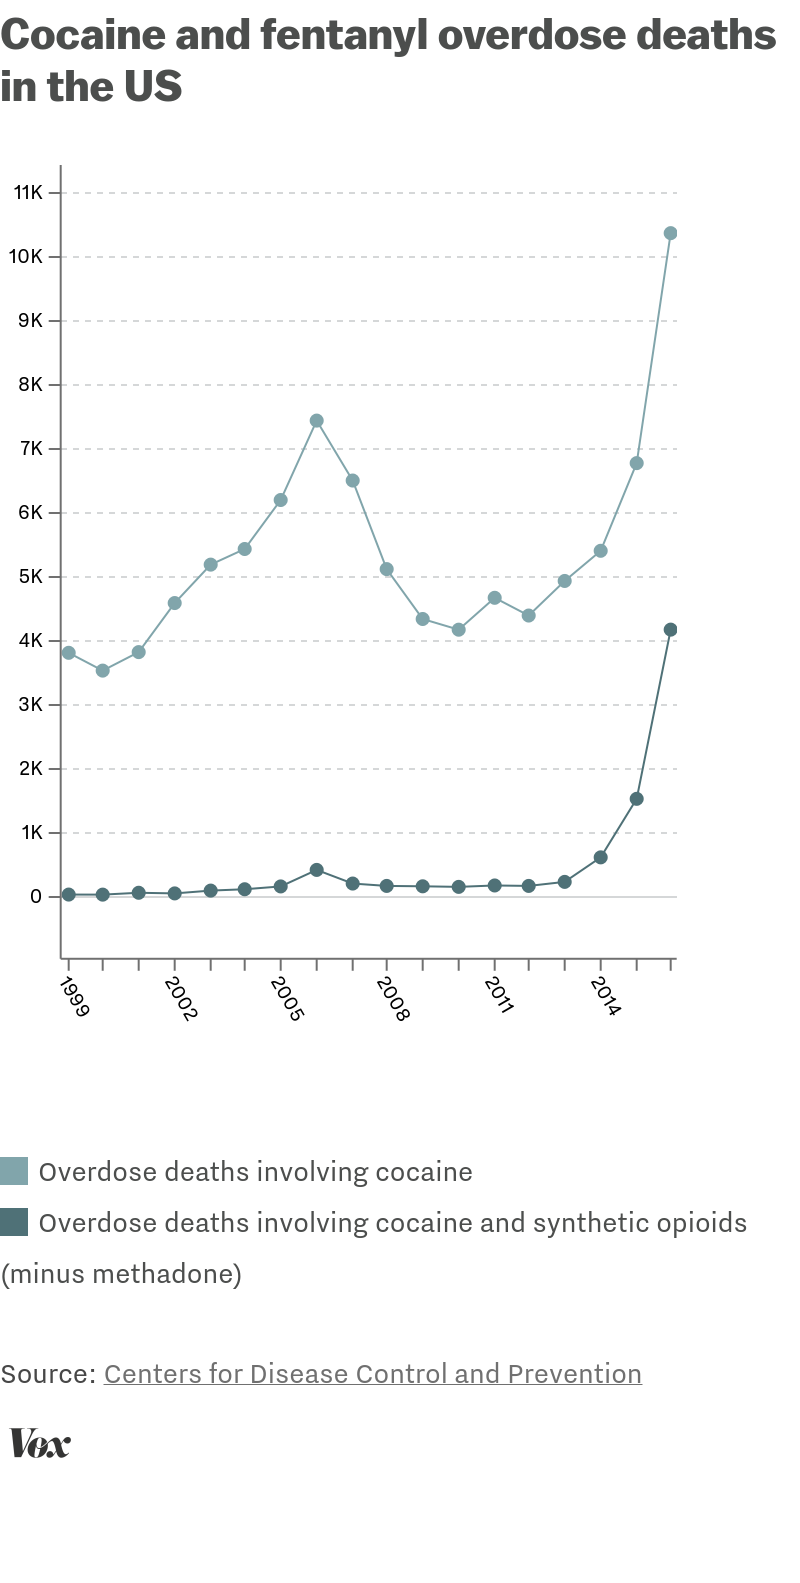 Starting The Conversation About Drug Use Positive Choices >> Why America S Cocaine Problem Is Now A Fentanyl Problem Too Vox